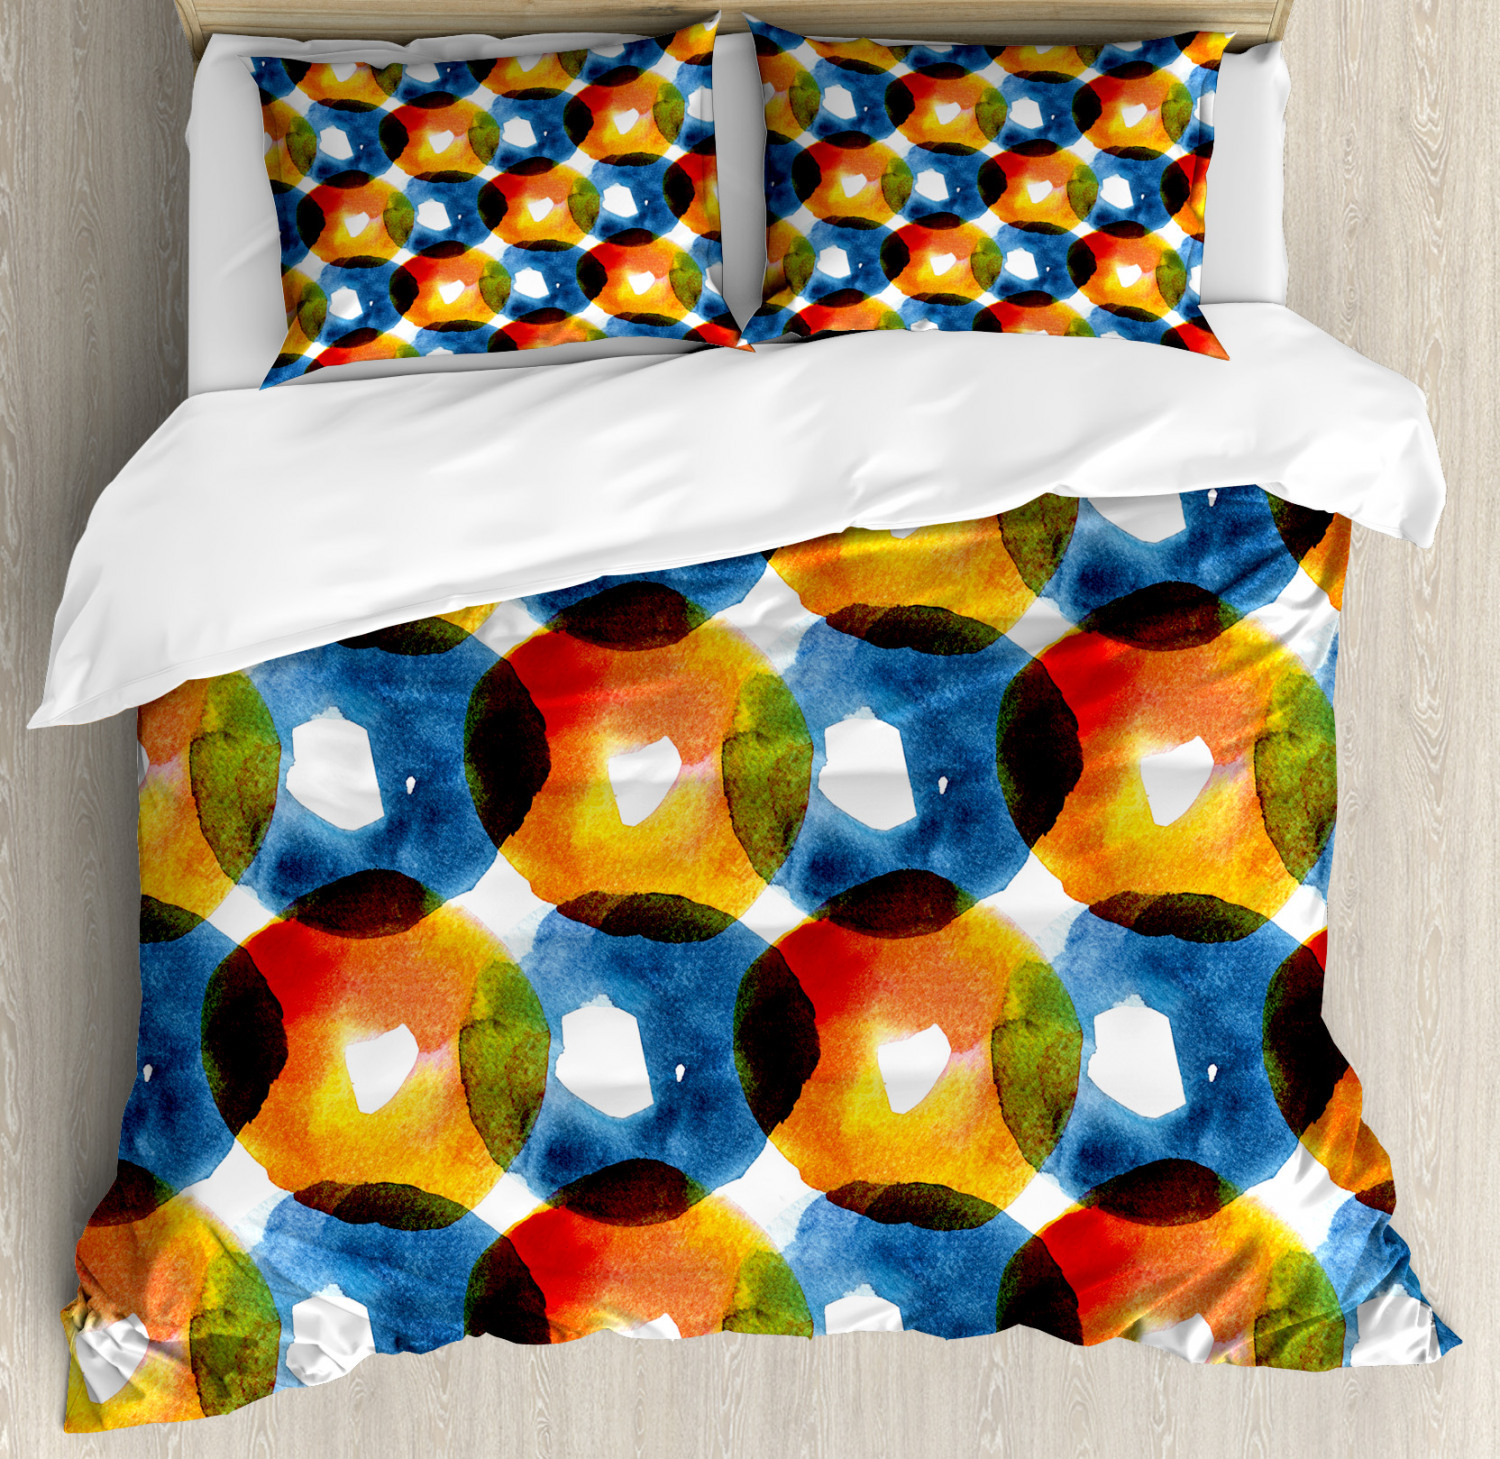 Modern Duvet Cover Set with Pillow Shams Watercolor Ring Shapes Print